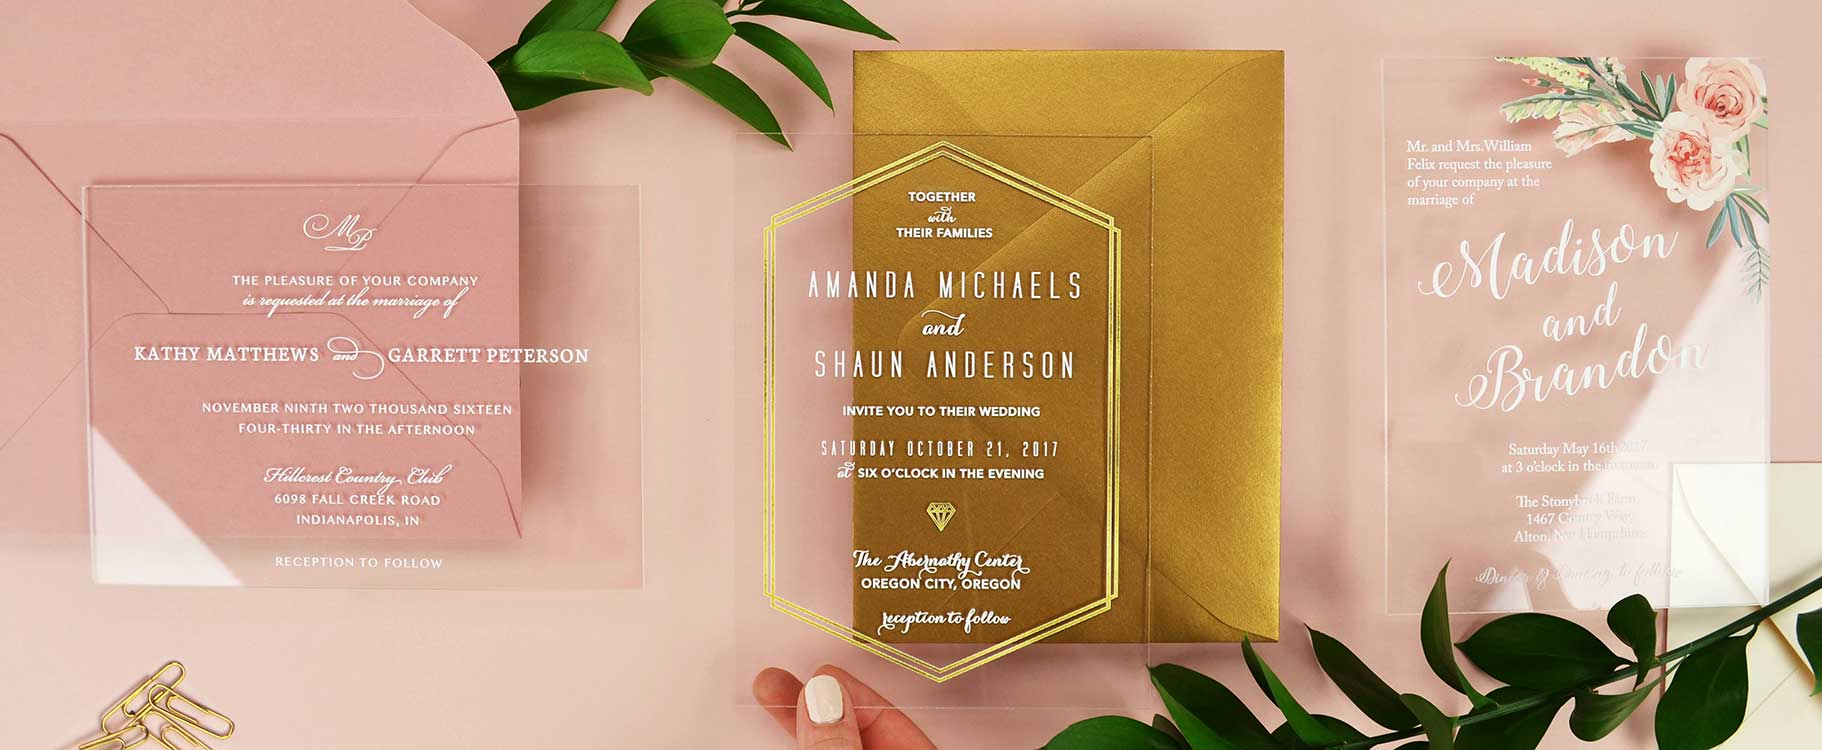 Invitation Wedding Card: Acrylic Wedding Invitations